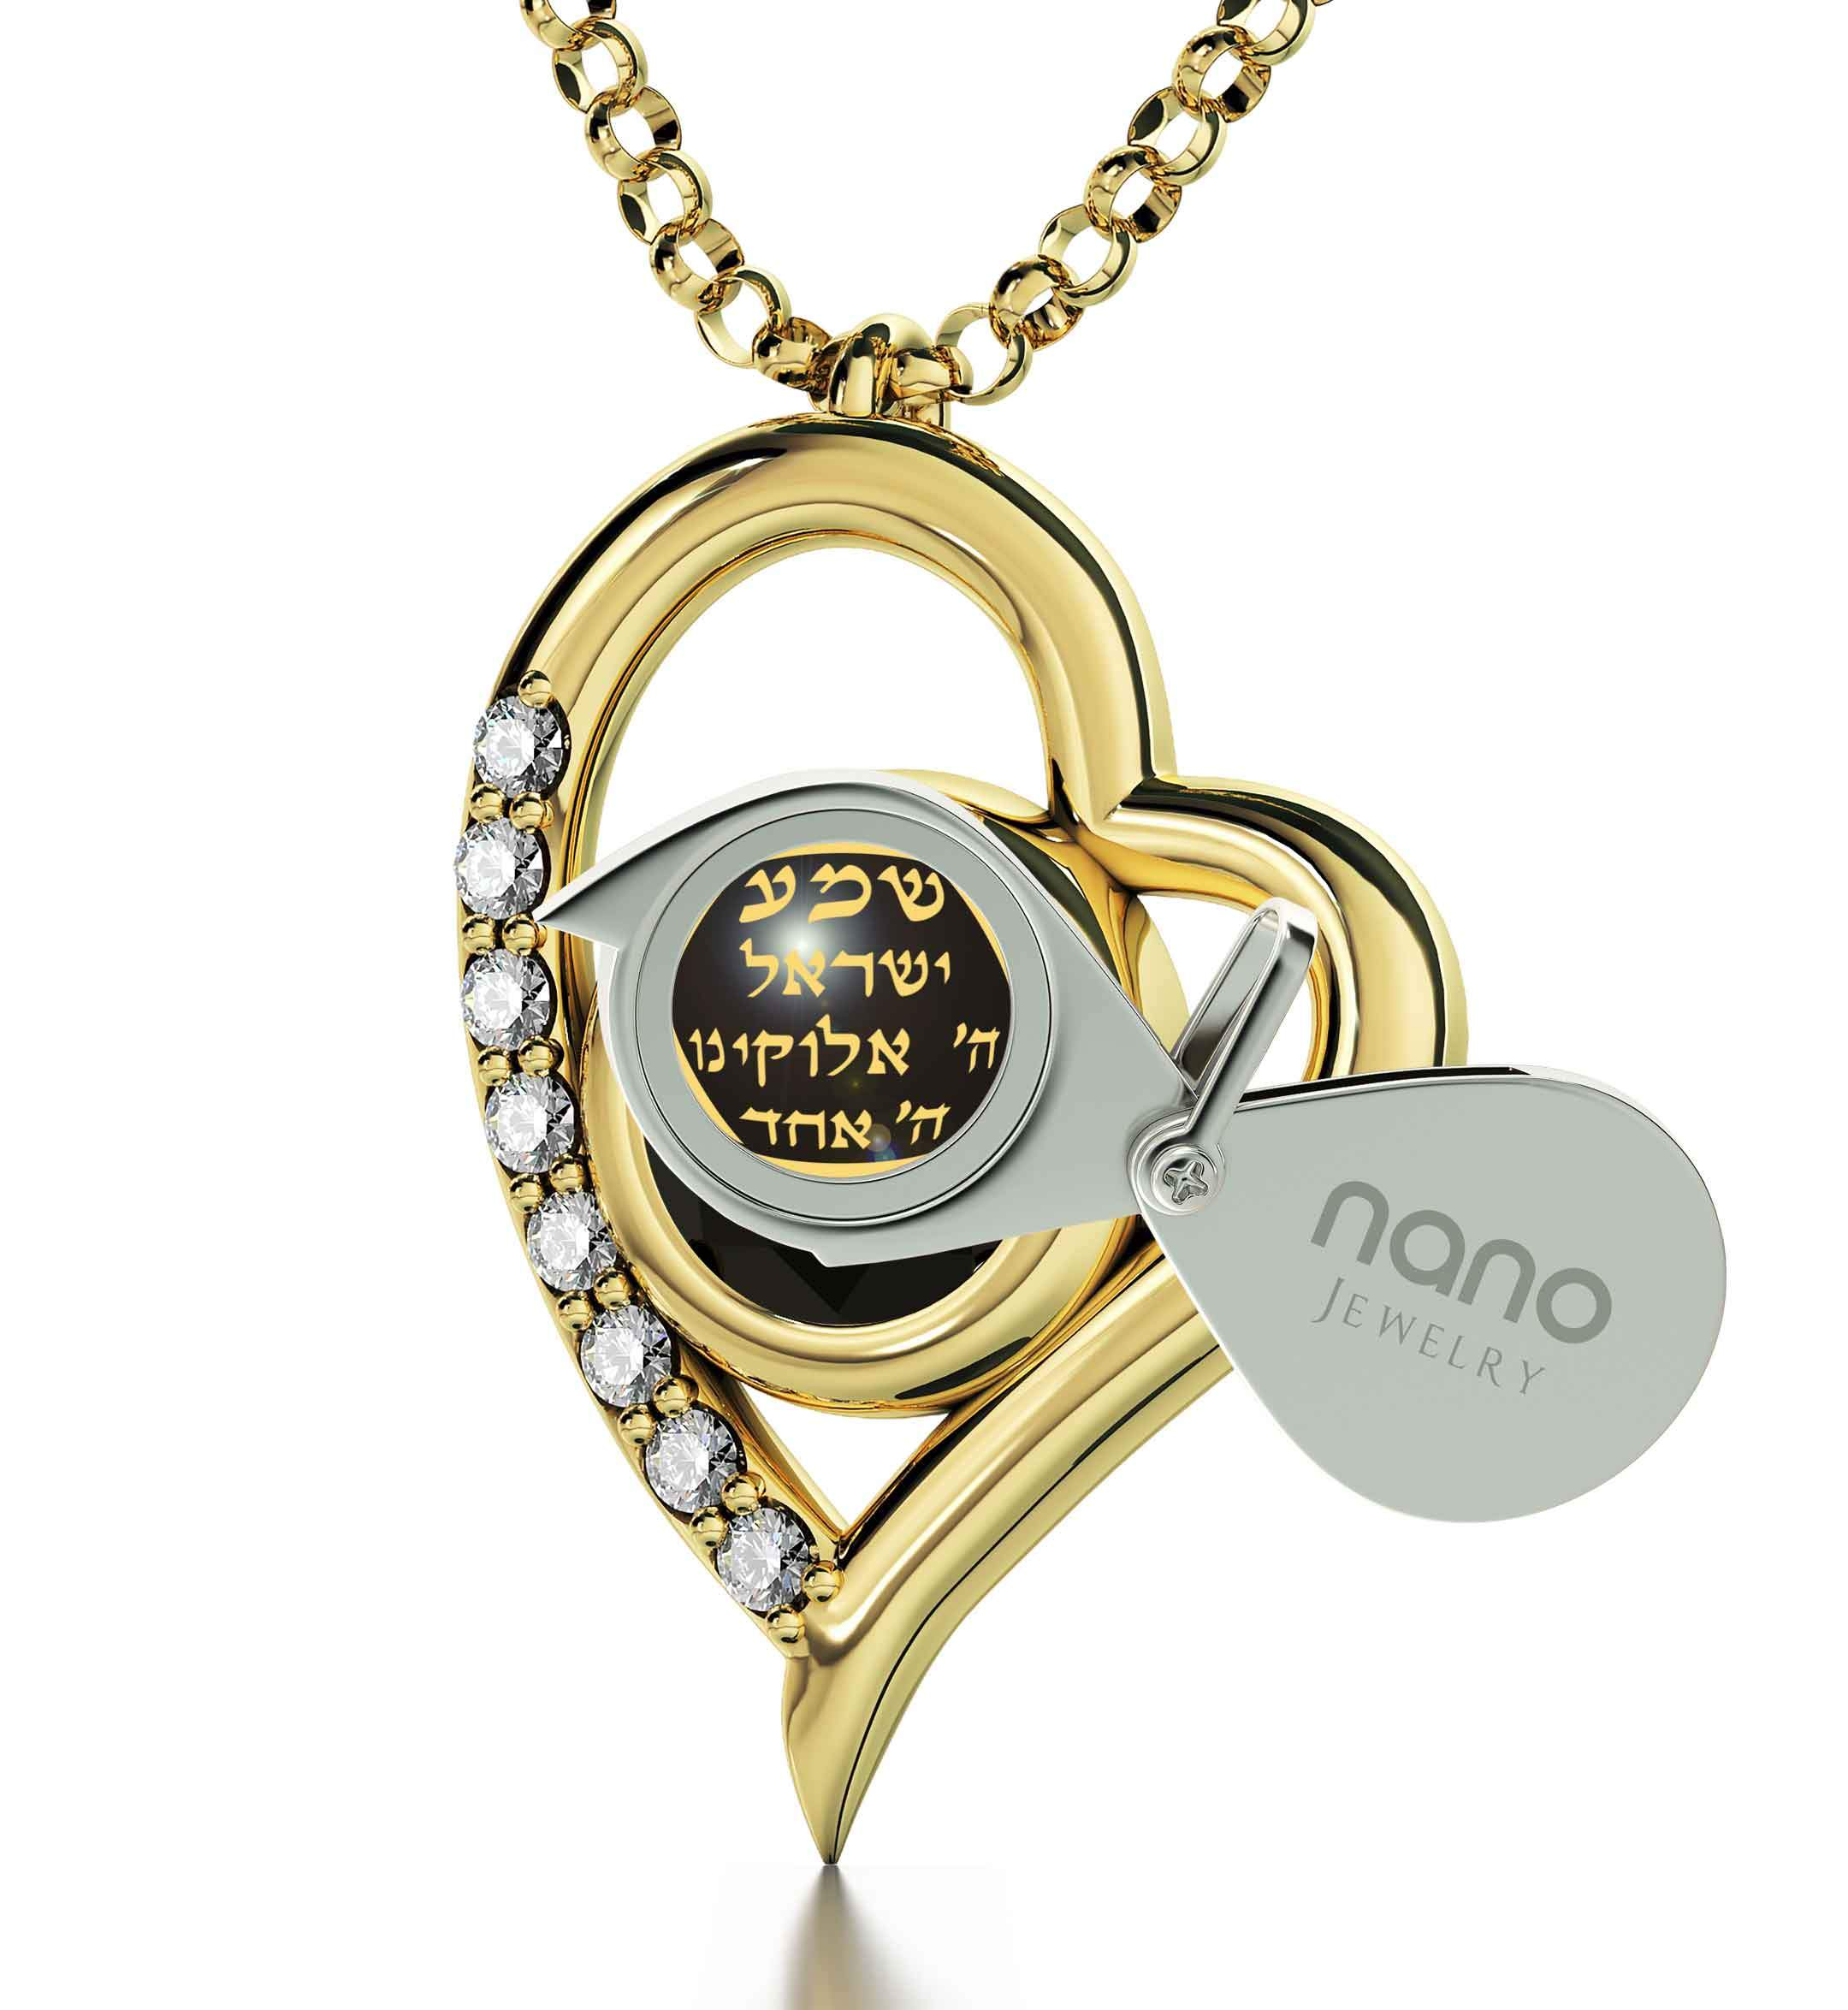 """Shema Yisrael"" Engraved in 24k, Israeli Jewelry with Black Onyx Stone, Jewish Gifts, Nano Jewelry"